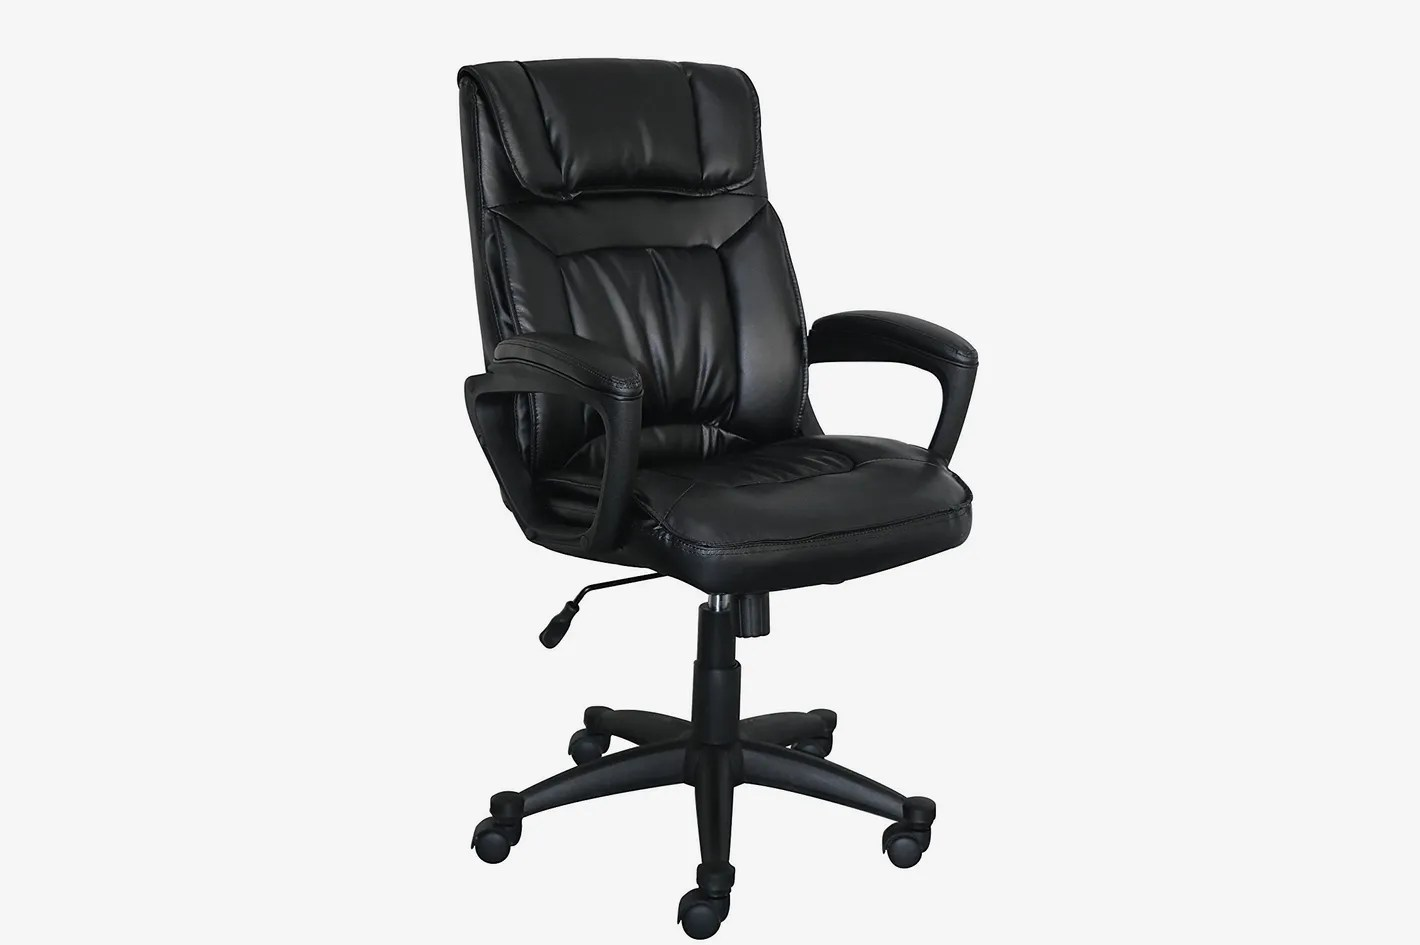 16 Best Office Chairs and HomeOffice Chairs  2018